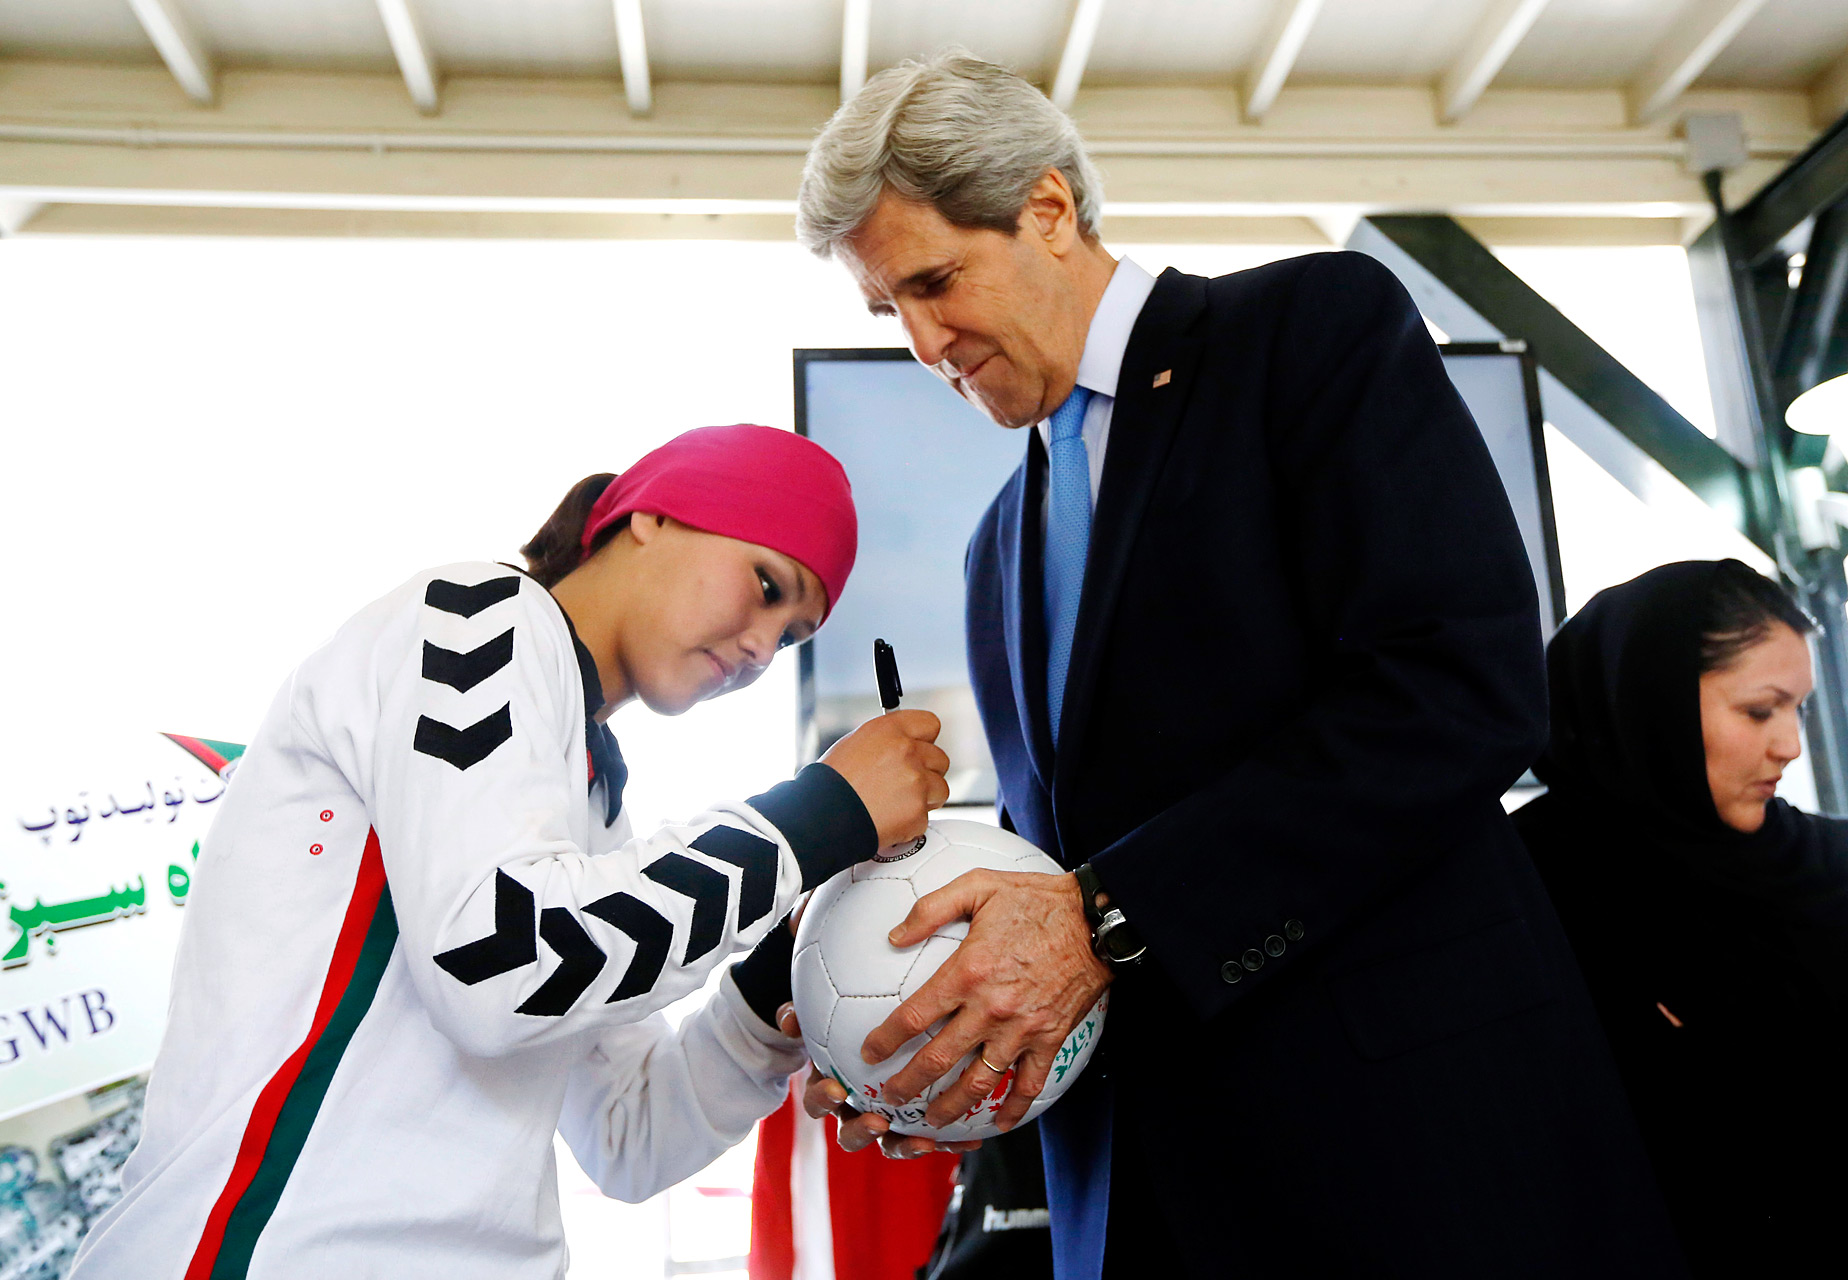 Zahra Mahmoodi and John Kerry